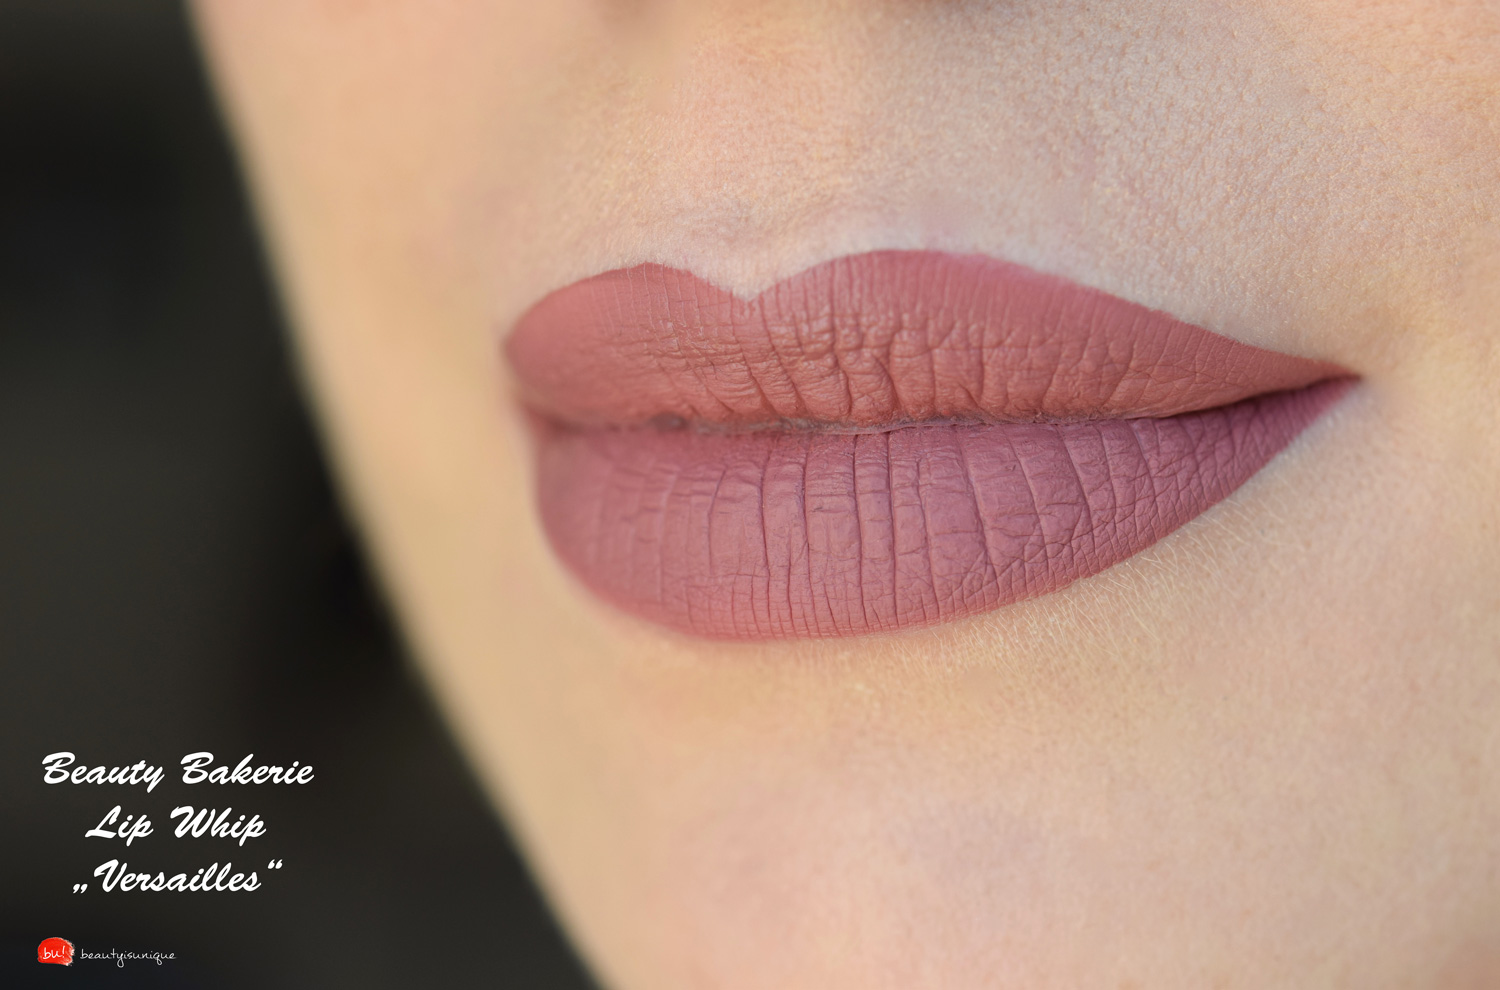 Beauty-bakerie-versailles-swatches